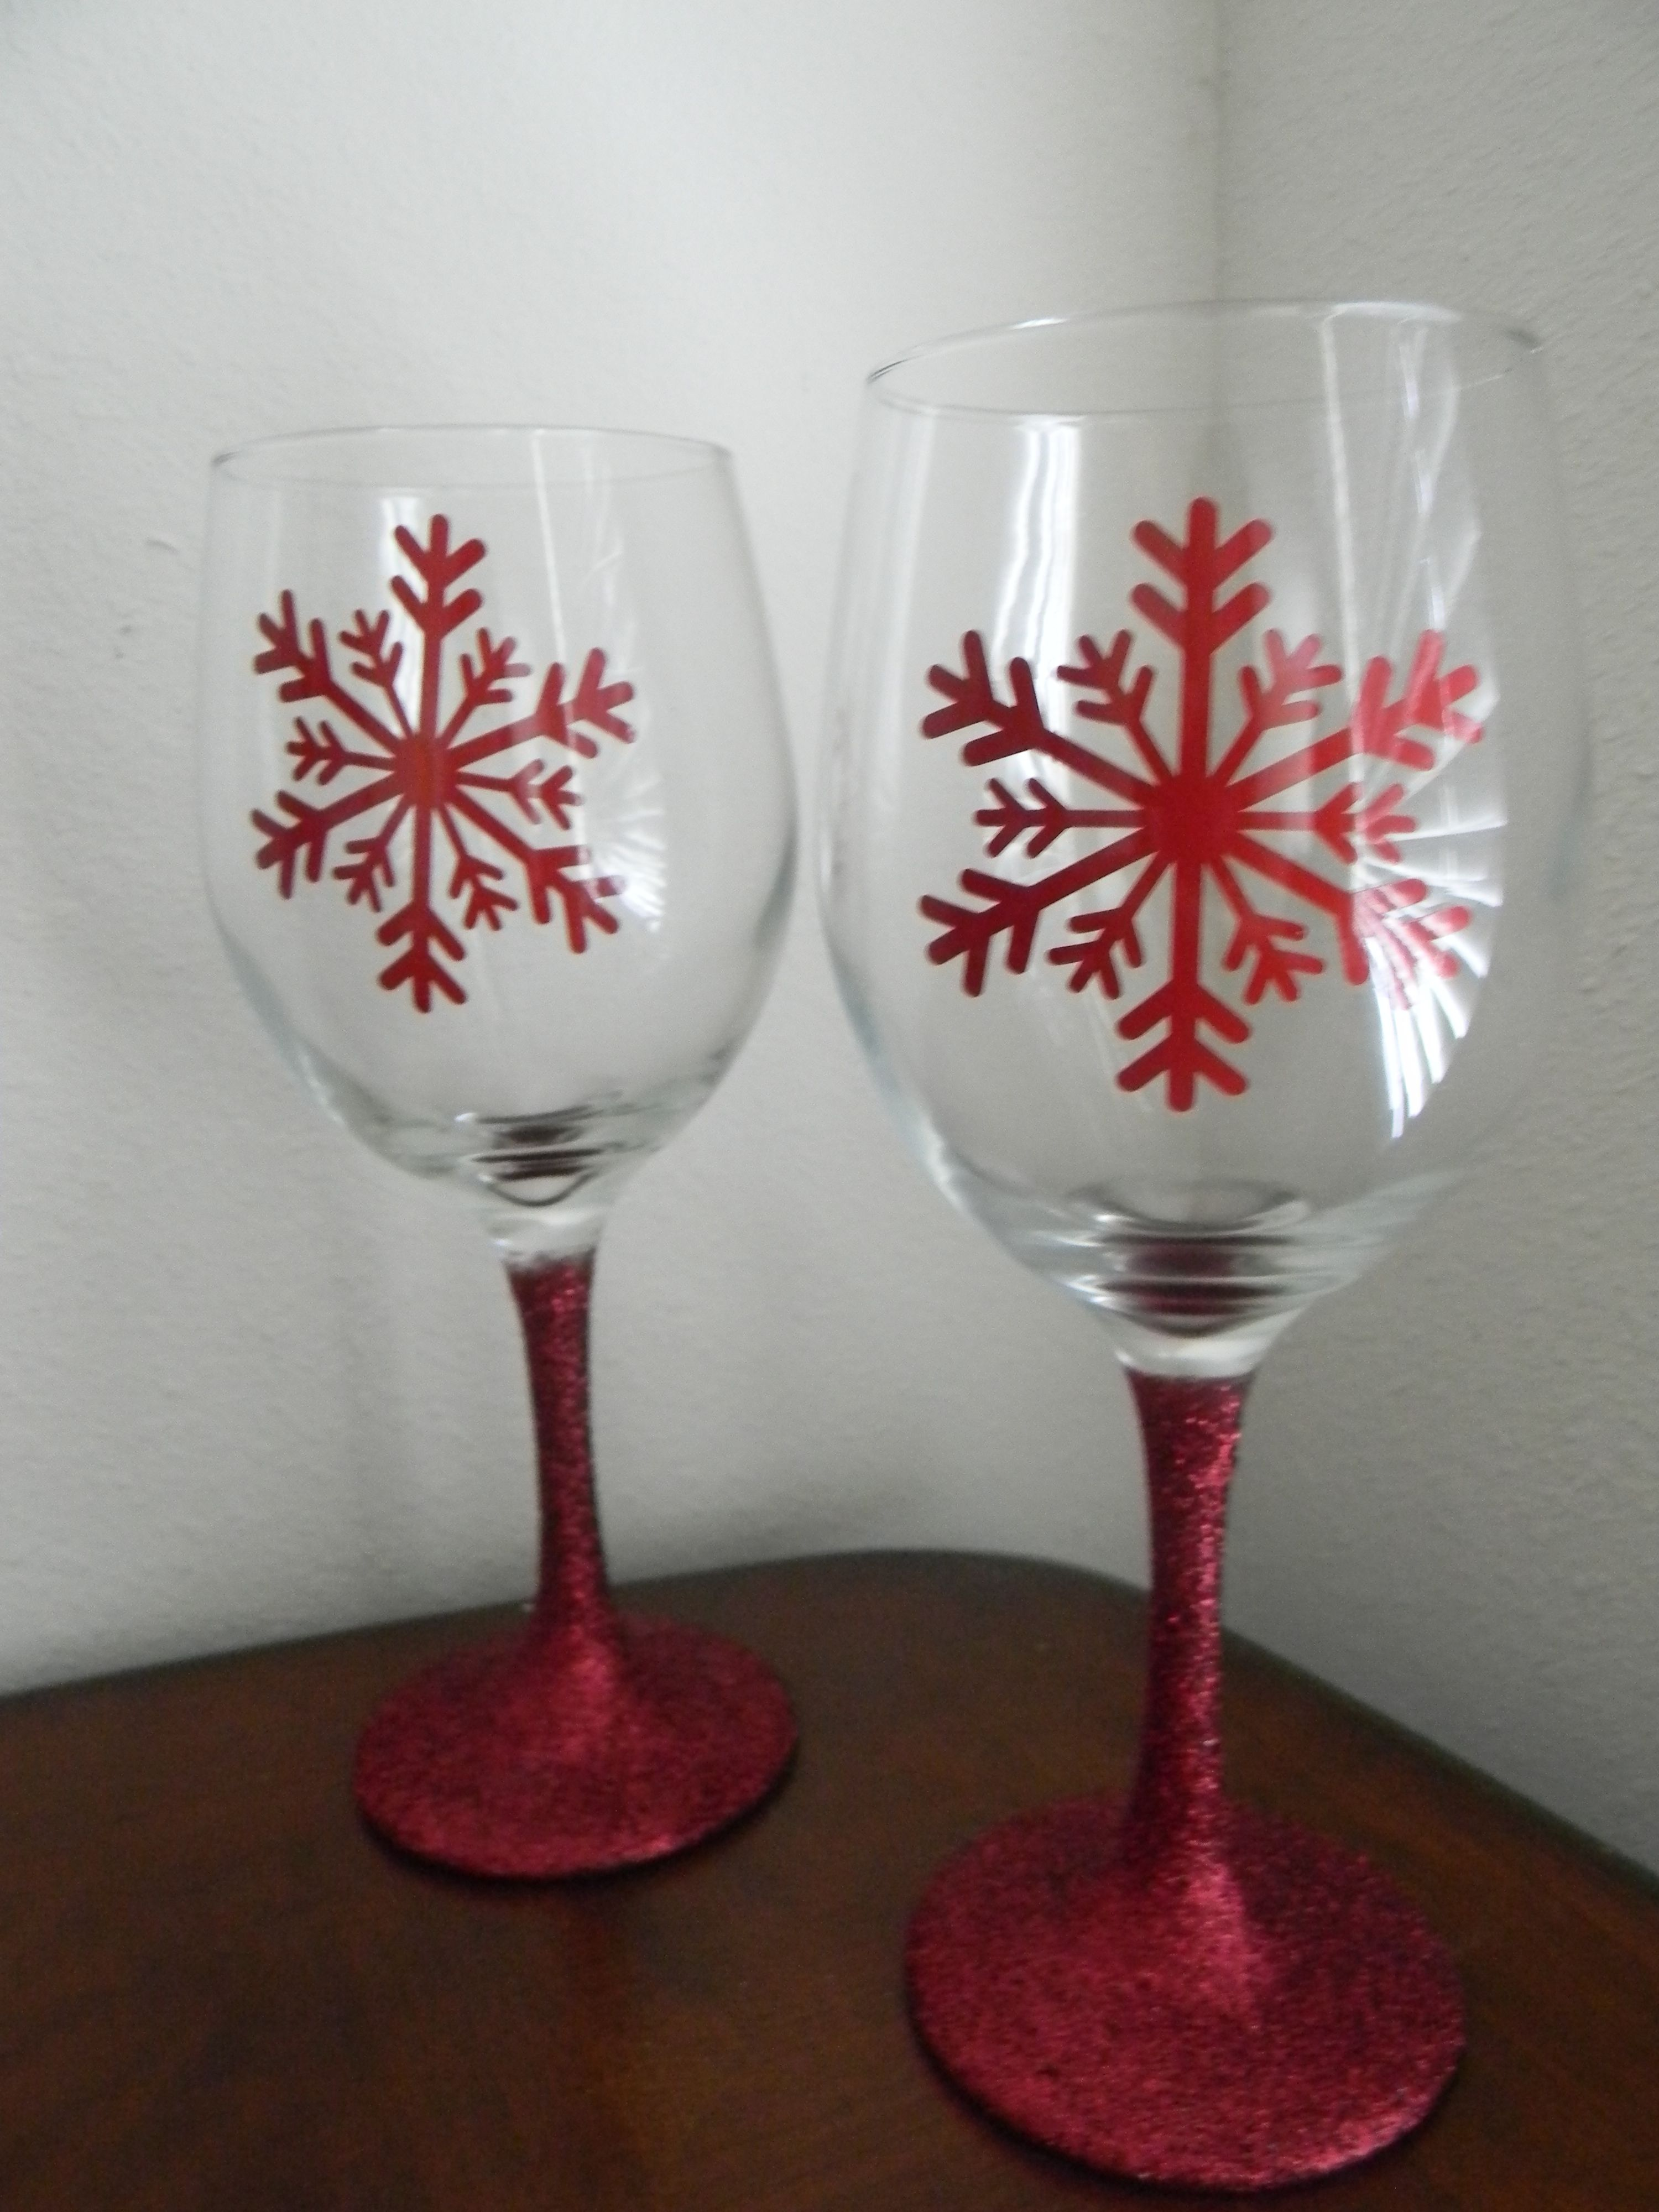 Glitter Stem Vinyl Snowflake Wine Glasses Christmas Wine Glasses Snowflake Wine Glasses Christmas Wine Glasses Diy